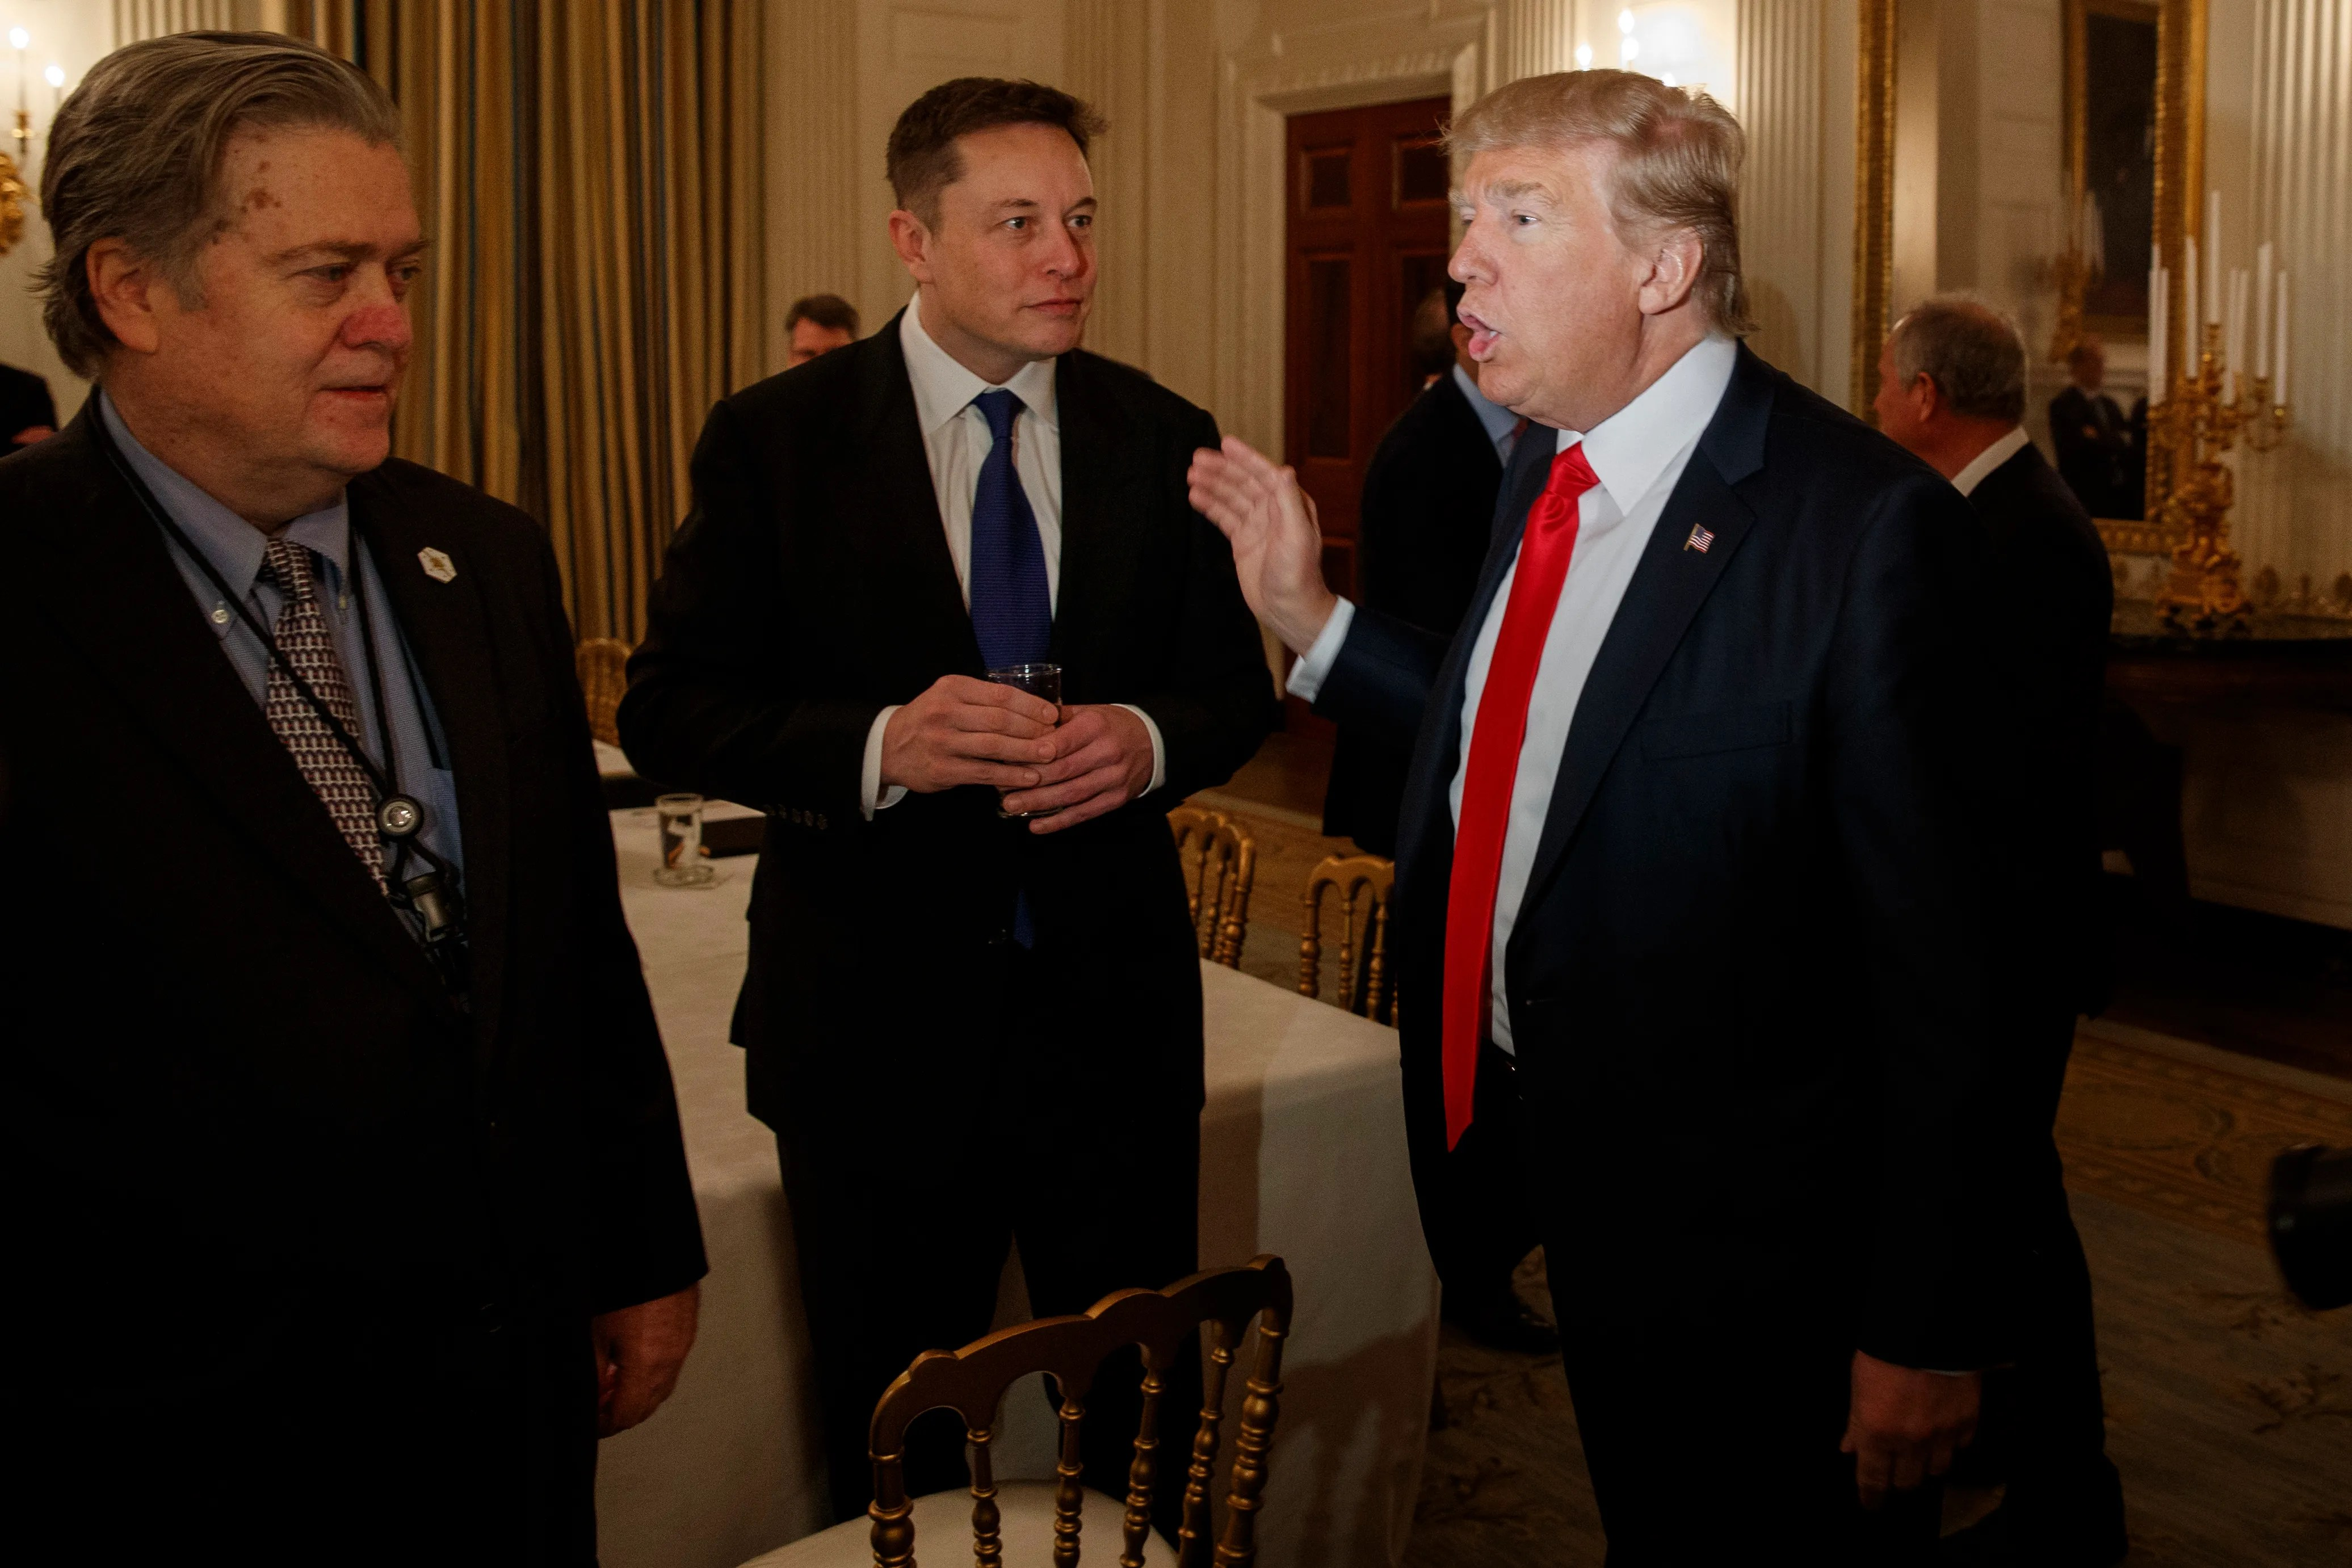 Donald Trump: Elon Musk is 'one of our great geniuses' like Edison